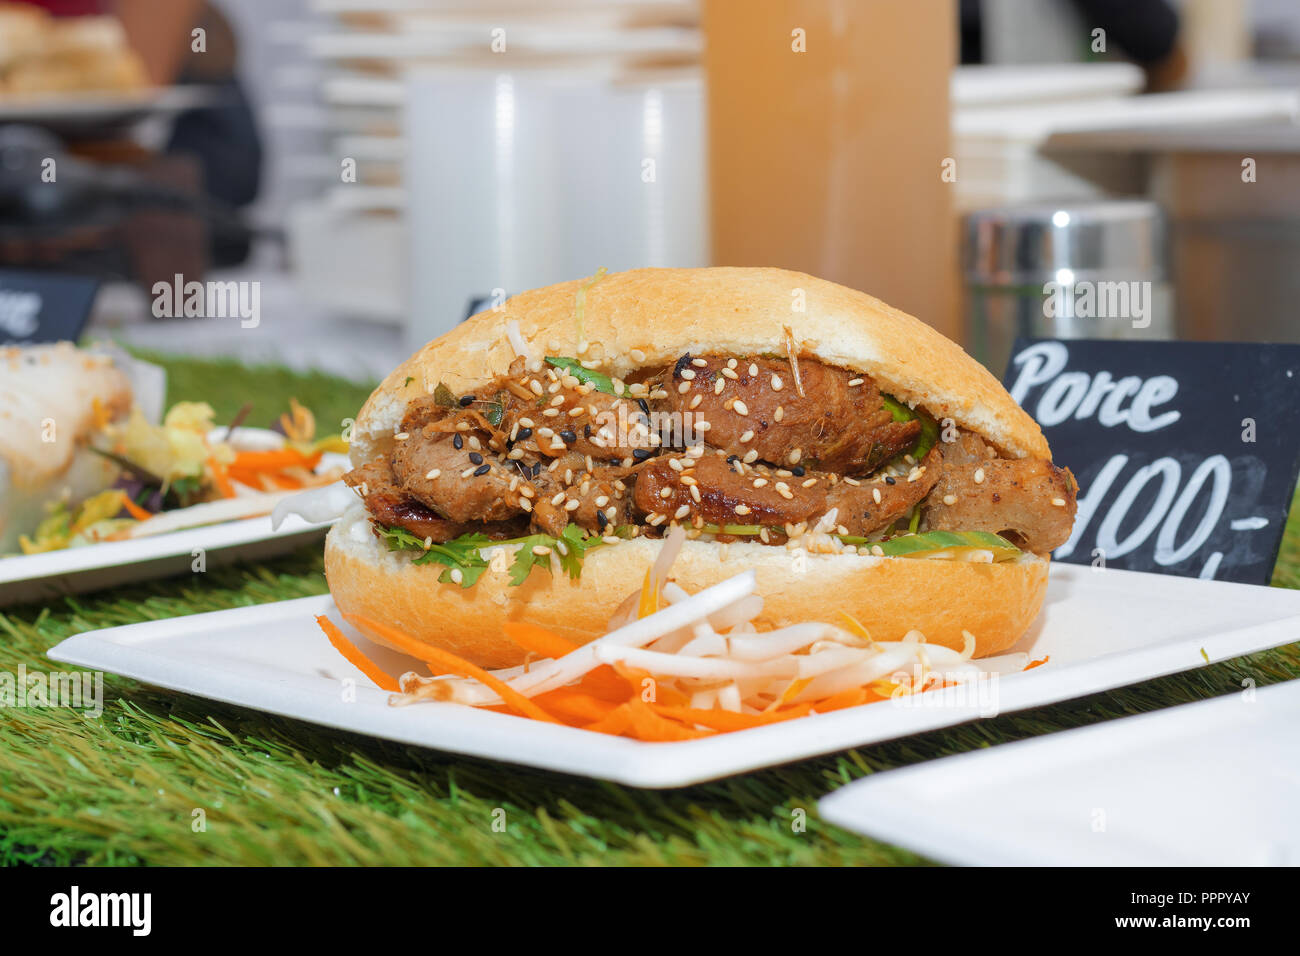 The paper coaster with Vietnamese variation of the burger, bread, lamb meat and the fresh vegetable. - Stock Image